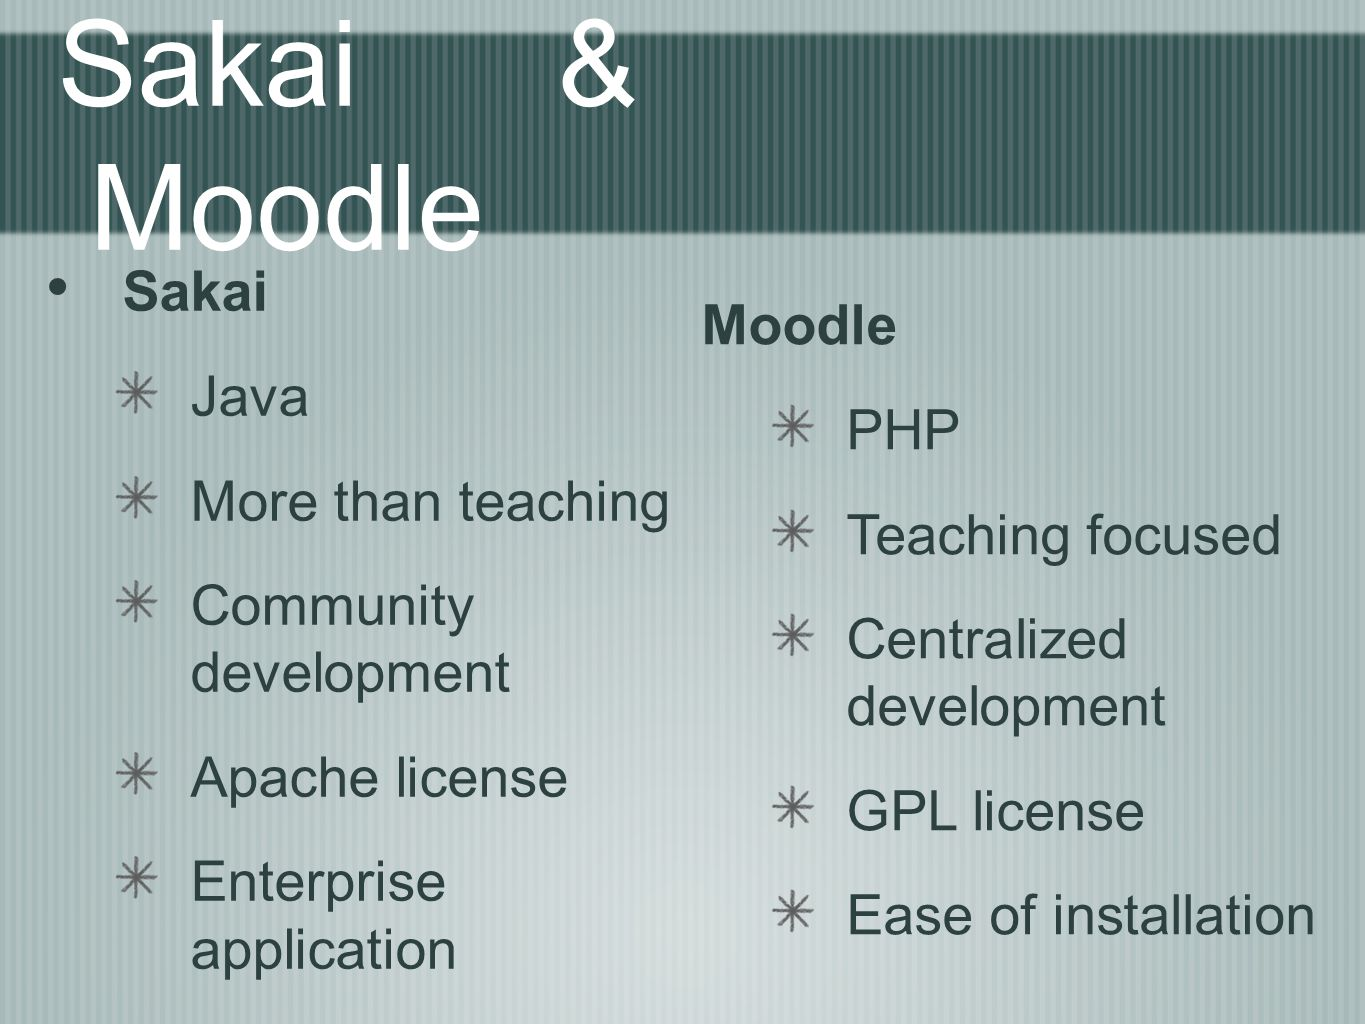 Sakai & Moodle Sakai Java More than teaching Community development Apache license Enterprise application Moodle PHP Teaching focused Centralized devel